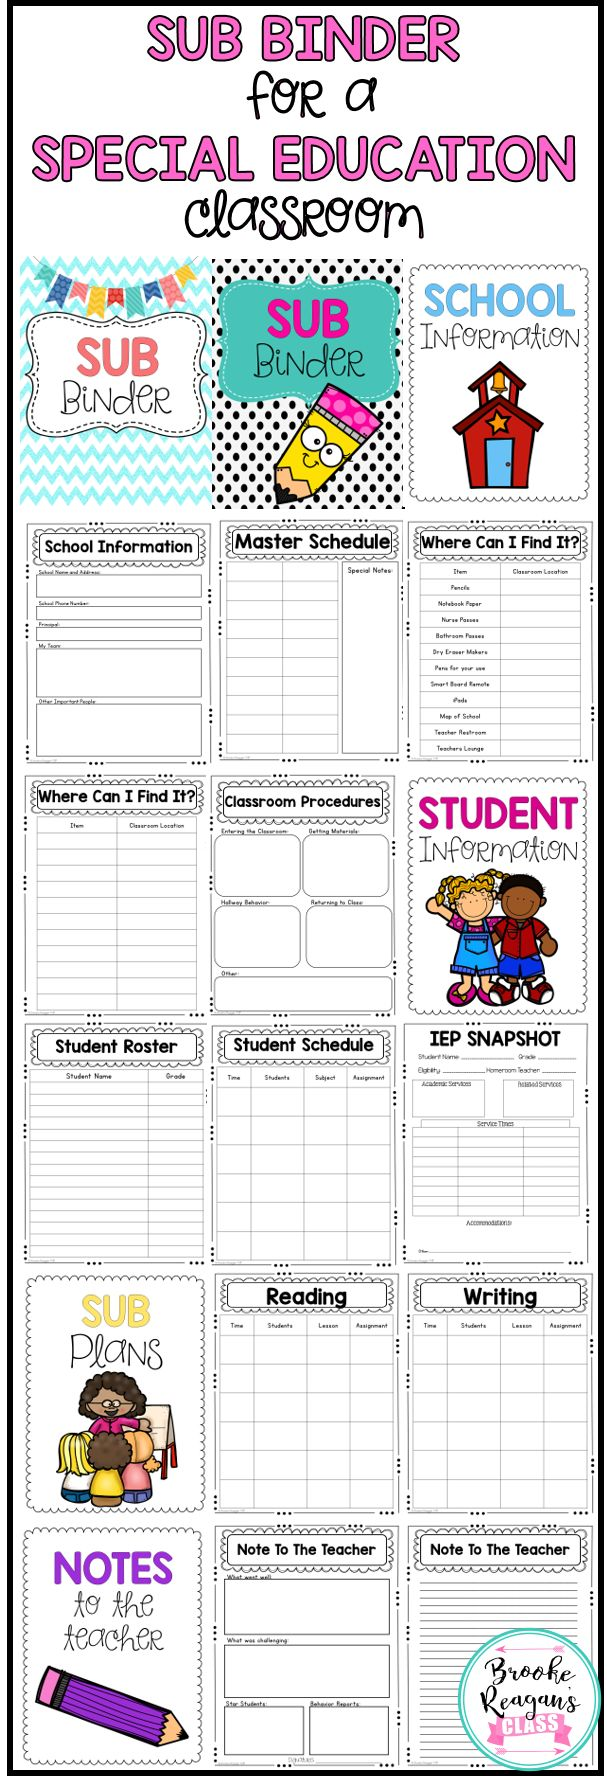 Editable Sub Binder for a special education classroom. Customize this binder to fit your specific classroom and needs. This binder is completely editable! Be super prepared and organized the next time you need a sub!